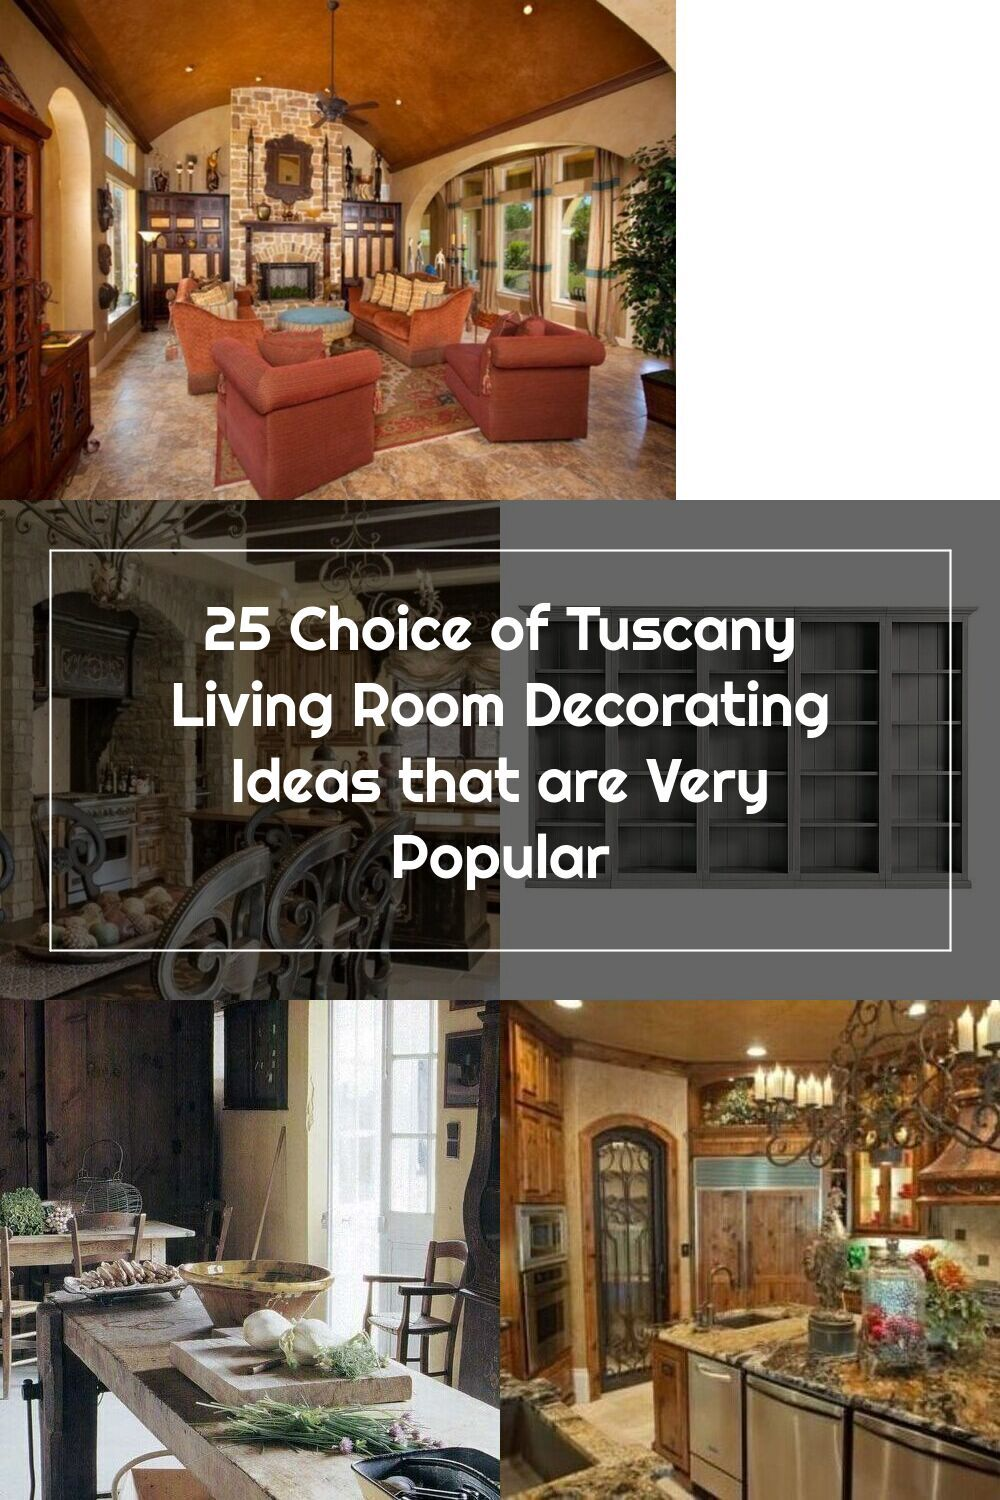 10+ Best Tuscan Living Room Decorating Ideas